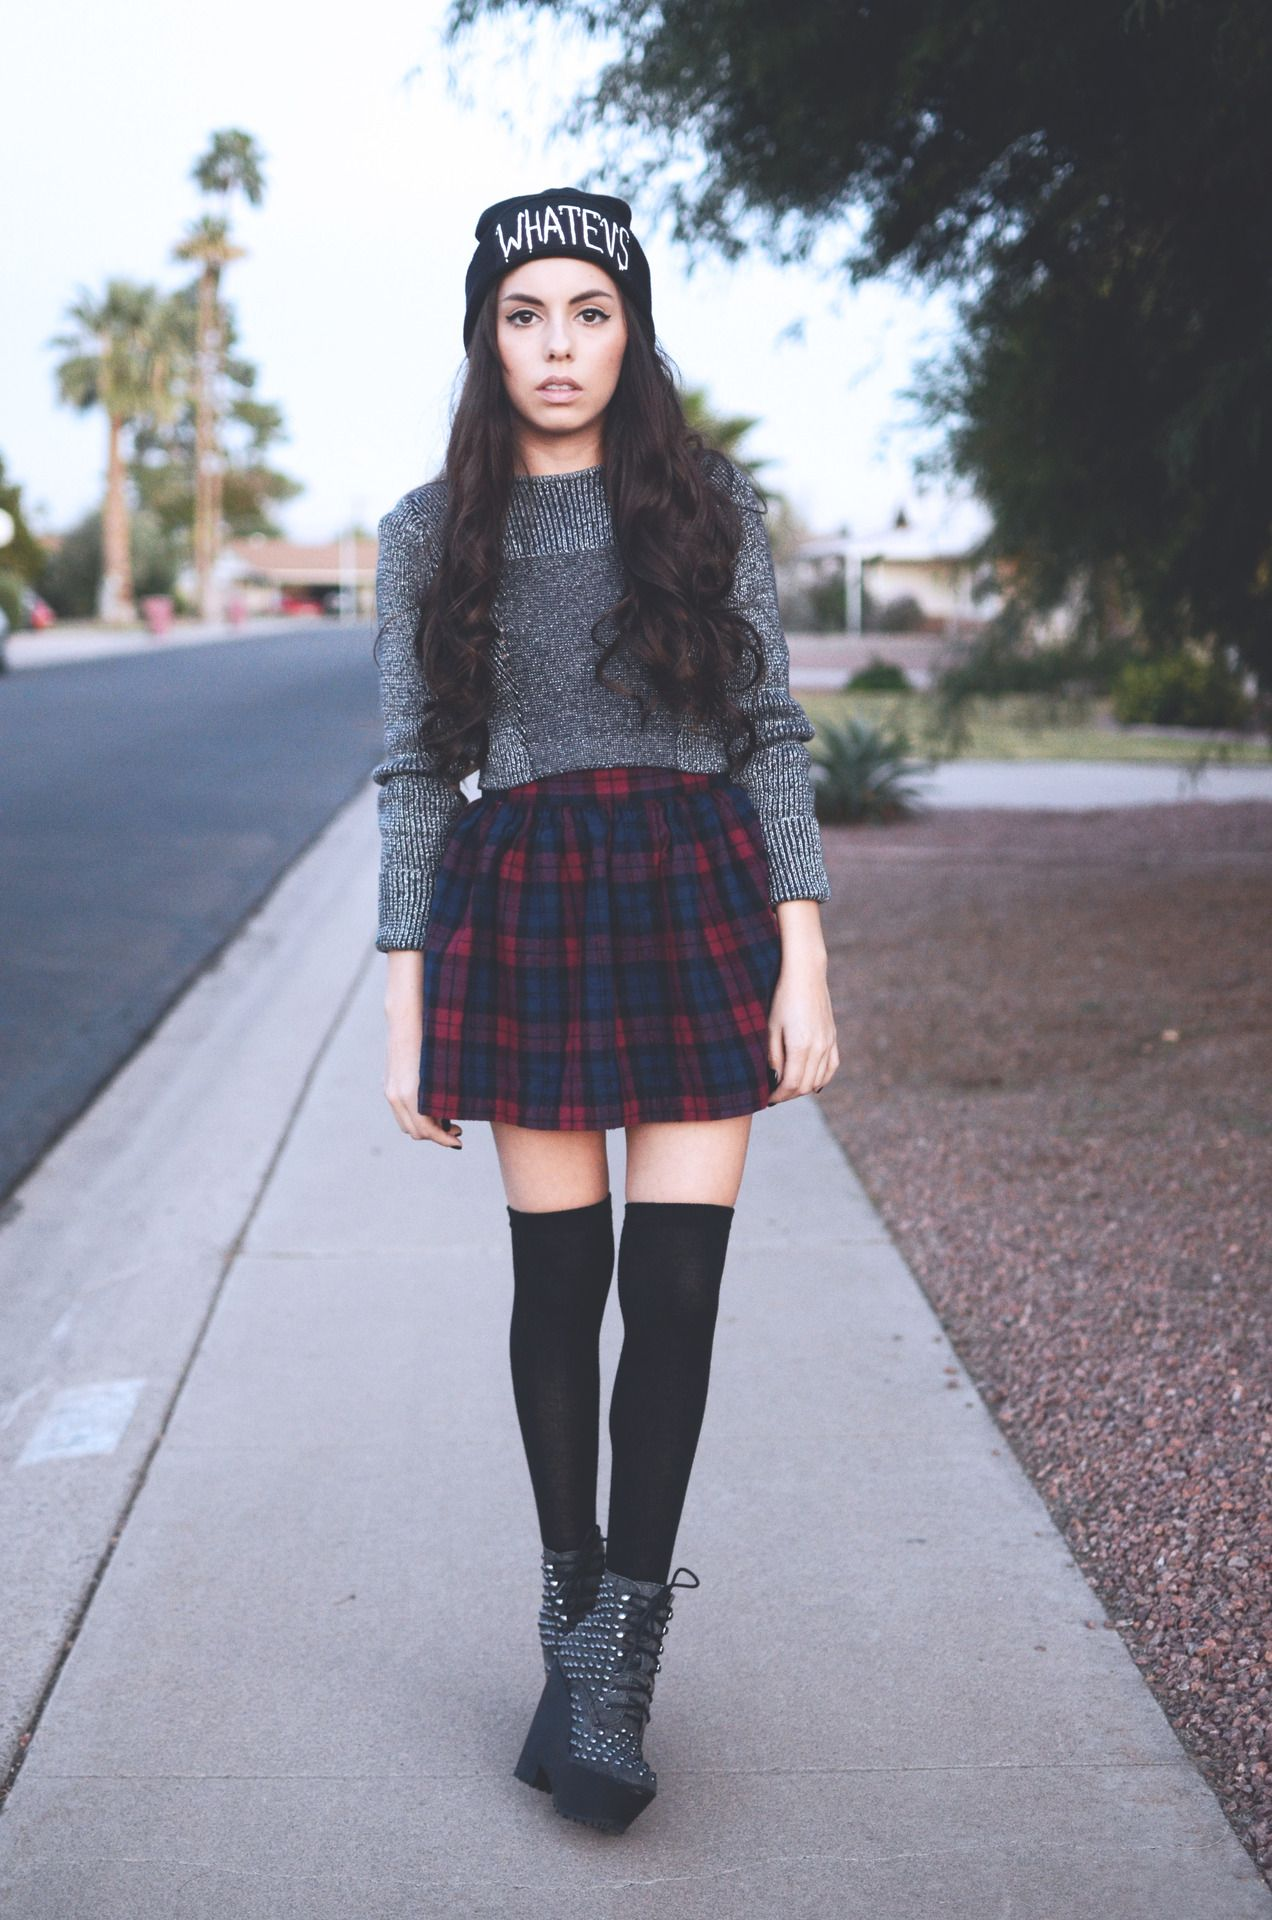 of the day h cropped sweater thrifted plaid skirt